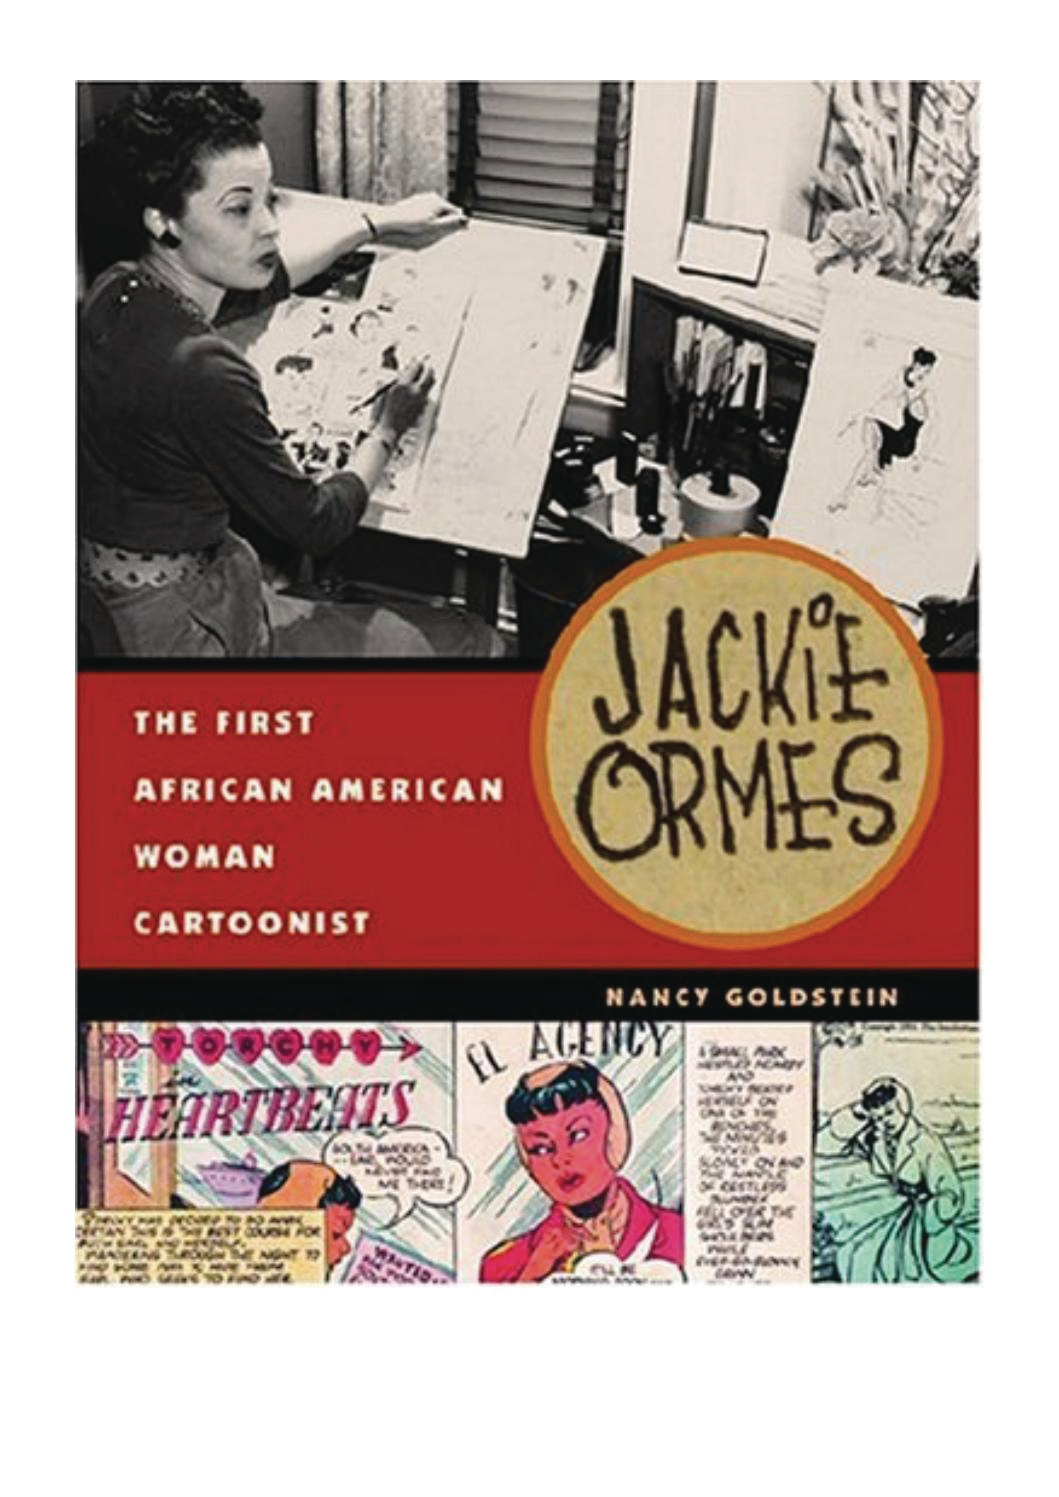 JACKIE ORMES FIRST AFRICAN AMERICAN WOMAN CARTOONIST SC